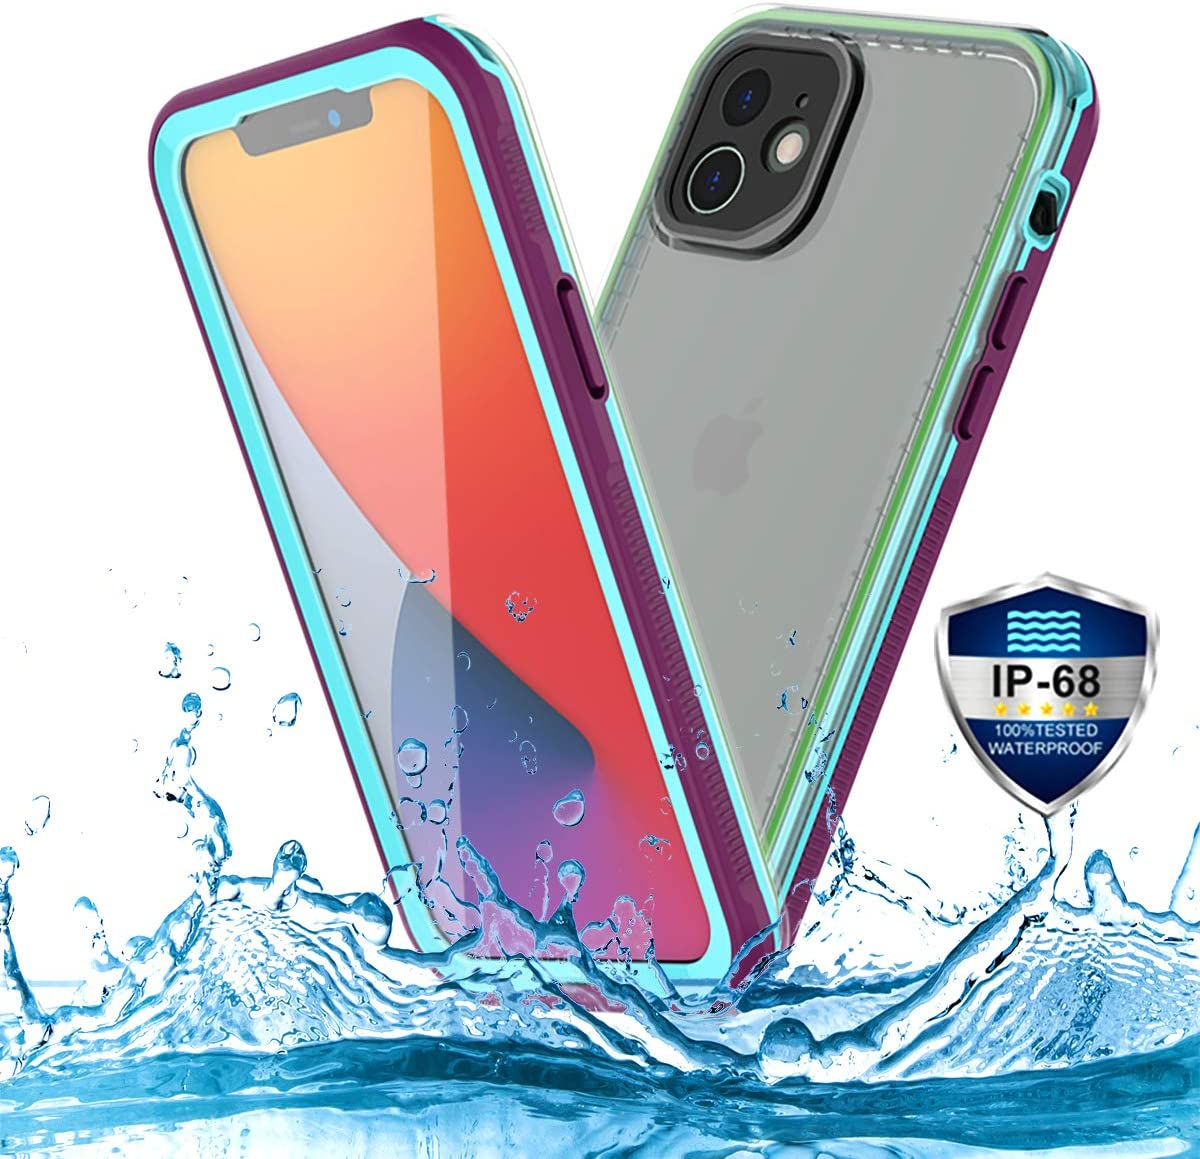 PINGTEKOR Waterproof Case for iPhone 12,IP68 Full Sealed Snowproof Dustproof Shockproof Heavy Duty Protection Cover with Screen Protector and Translucent Back Cover for iPhone 12 6.1 Inch